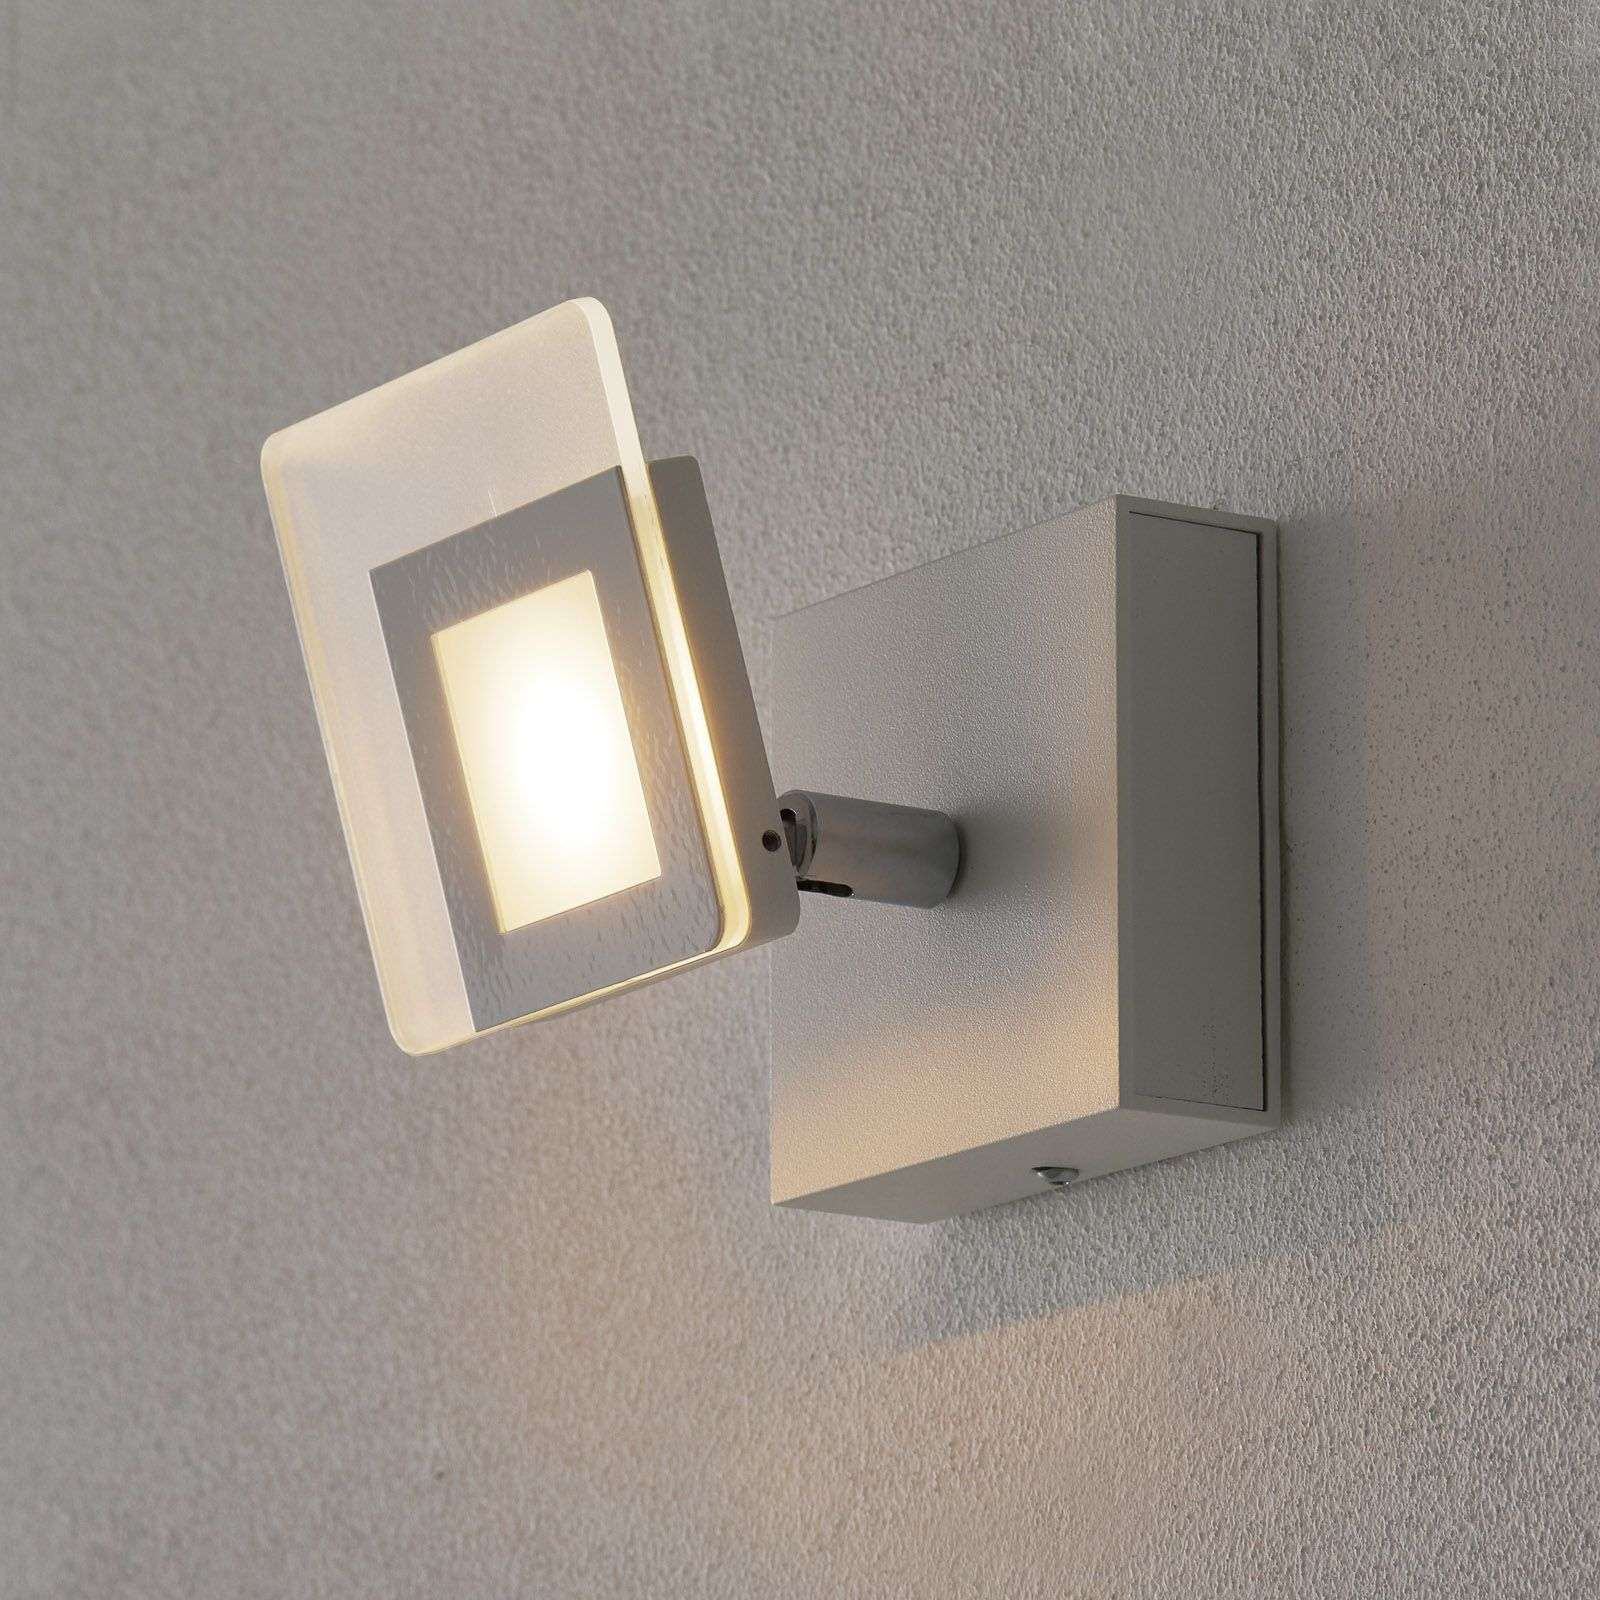 Foco LED de pared Line en color blanco